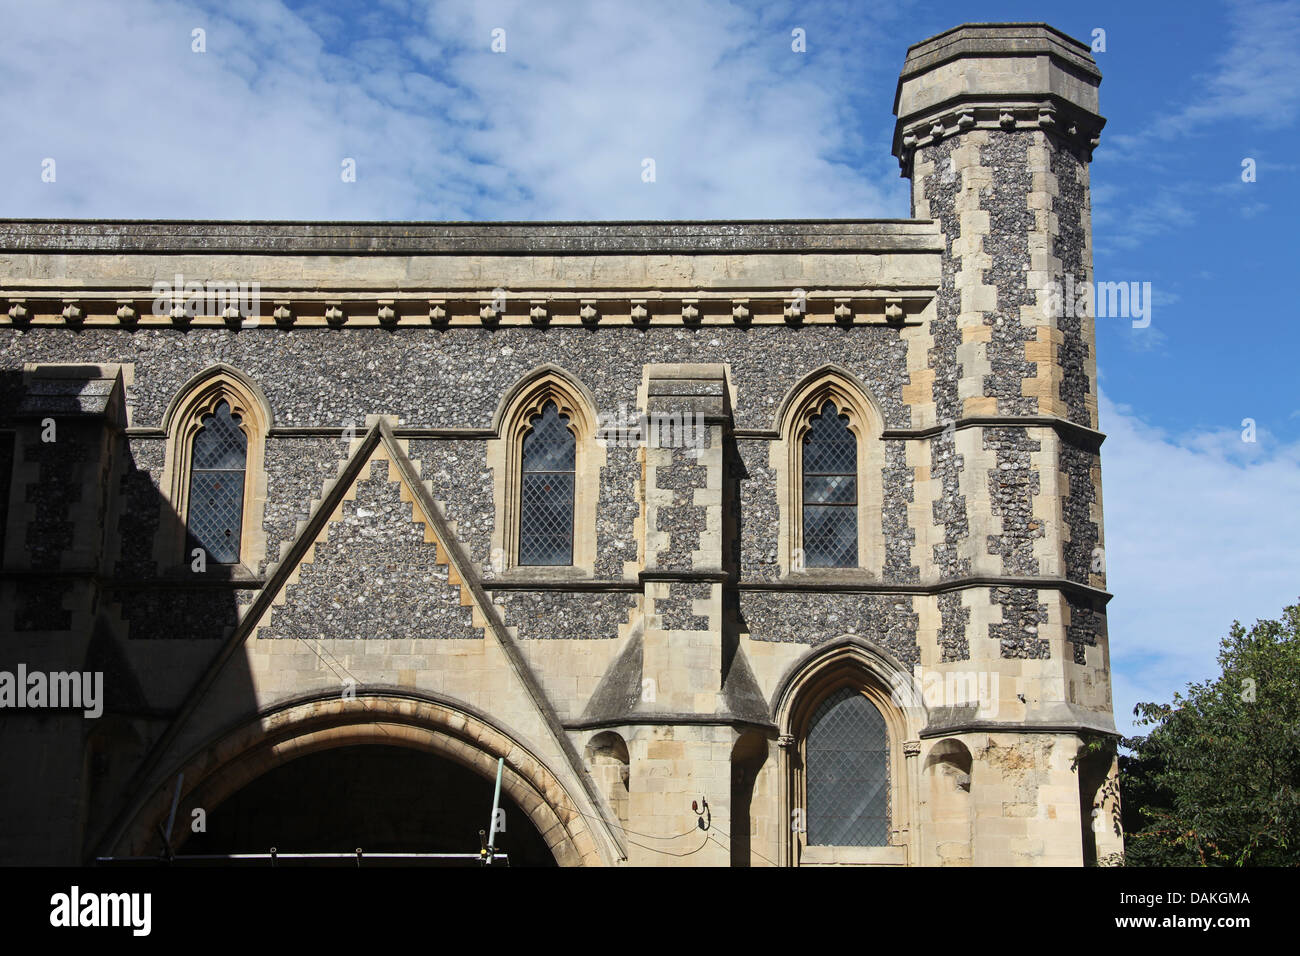 An old Gatehouse building constructed of Flint and cement complete with leaded glass windows, Gargoyles and a Tower. - Stock Image